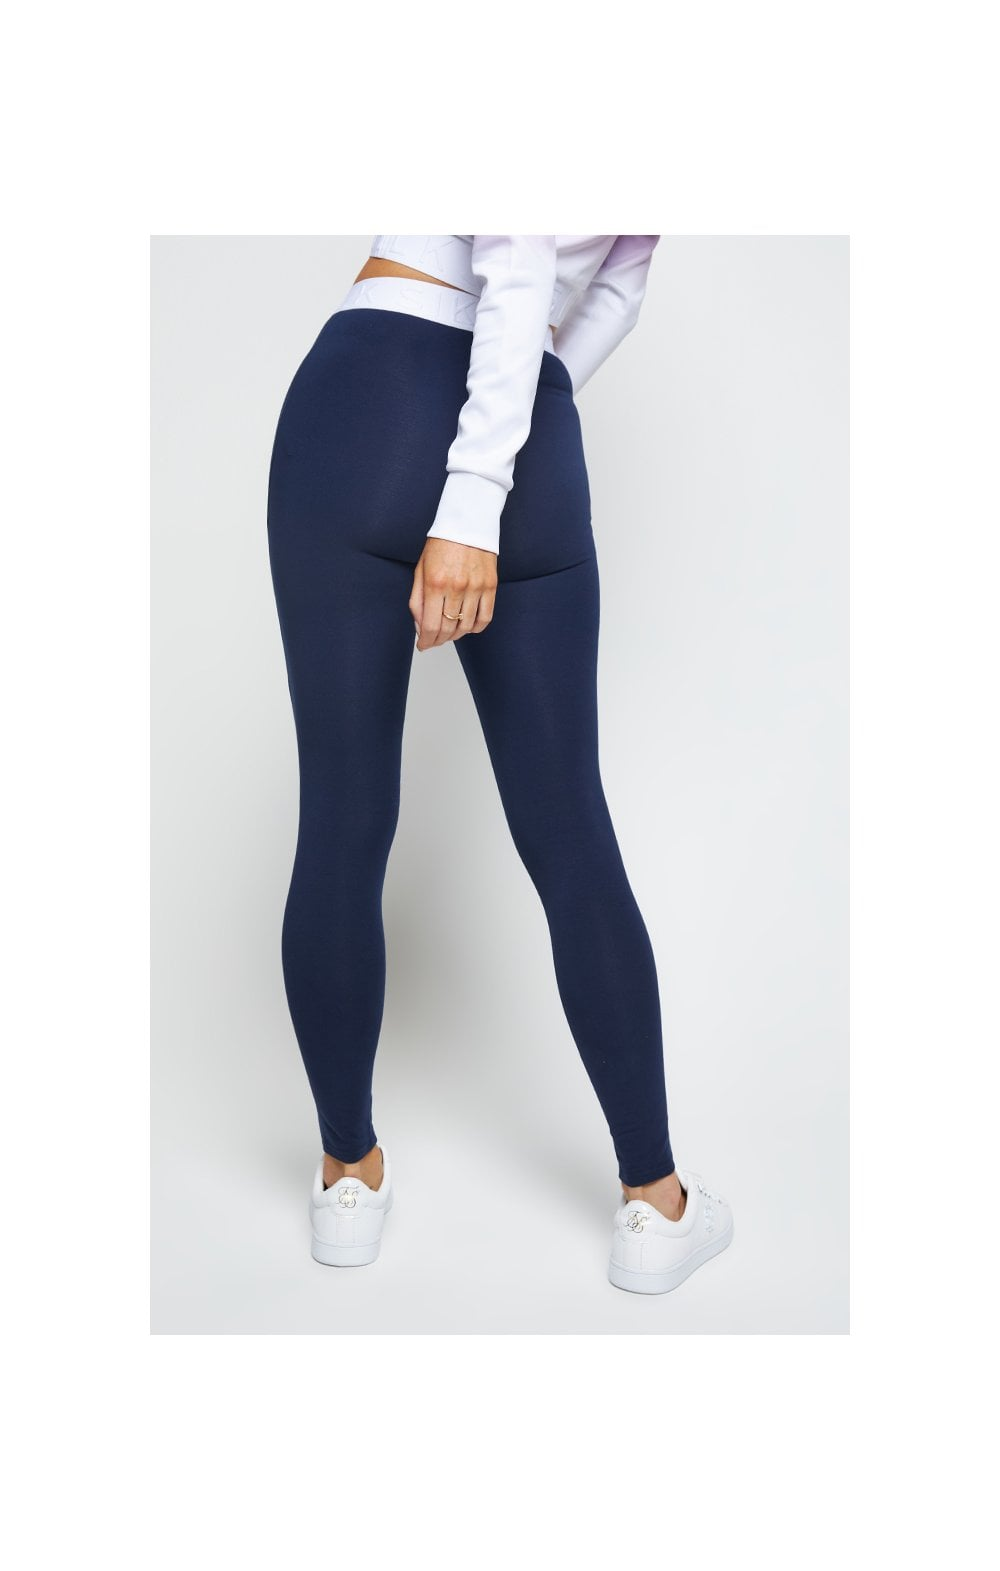 SikSilk Tape Waist Leggings - Navy (1)